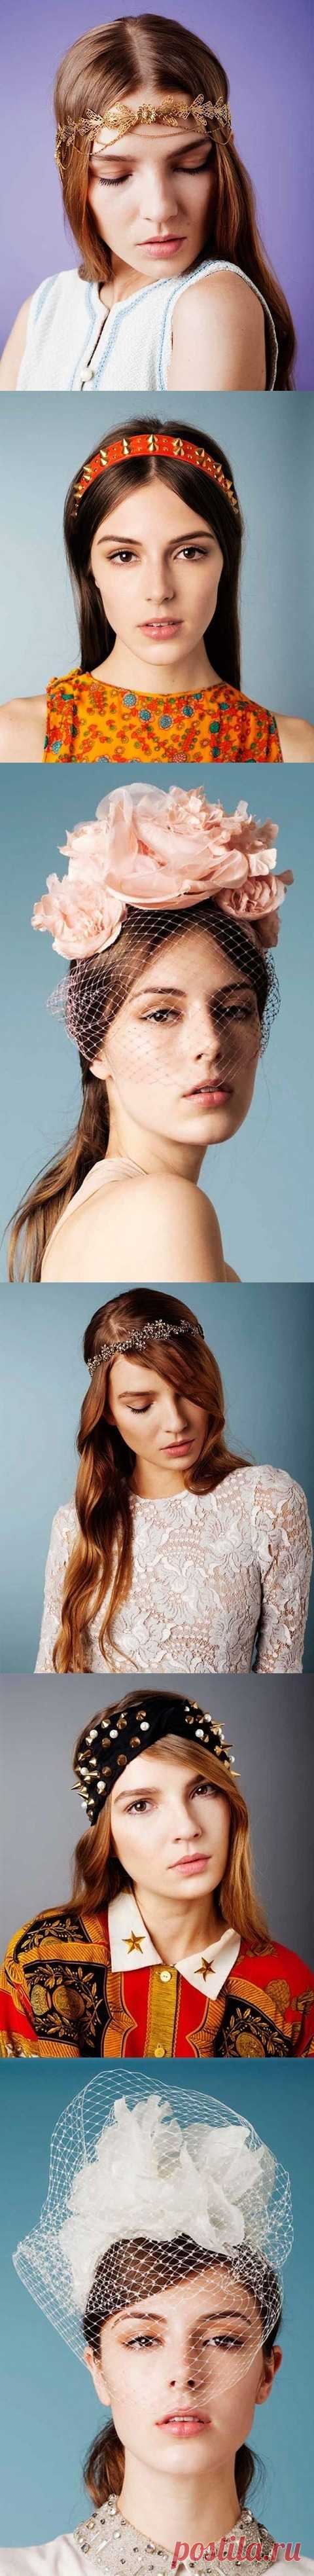 Stylish jewelry for hair from Jennifer Behr